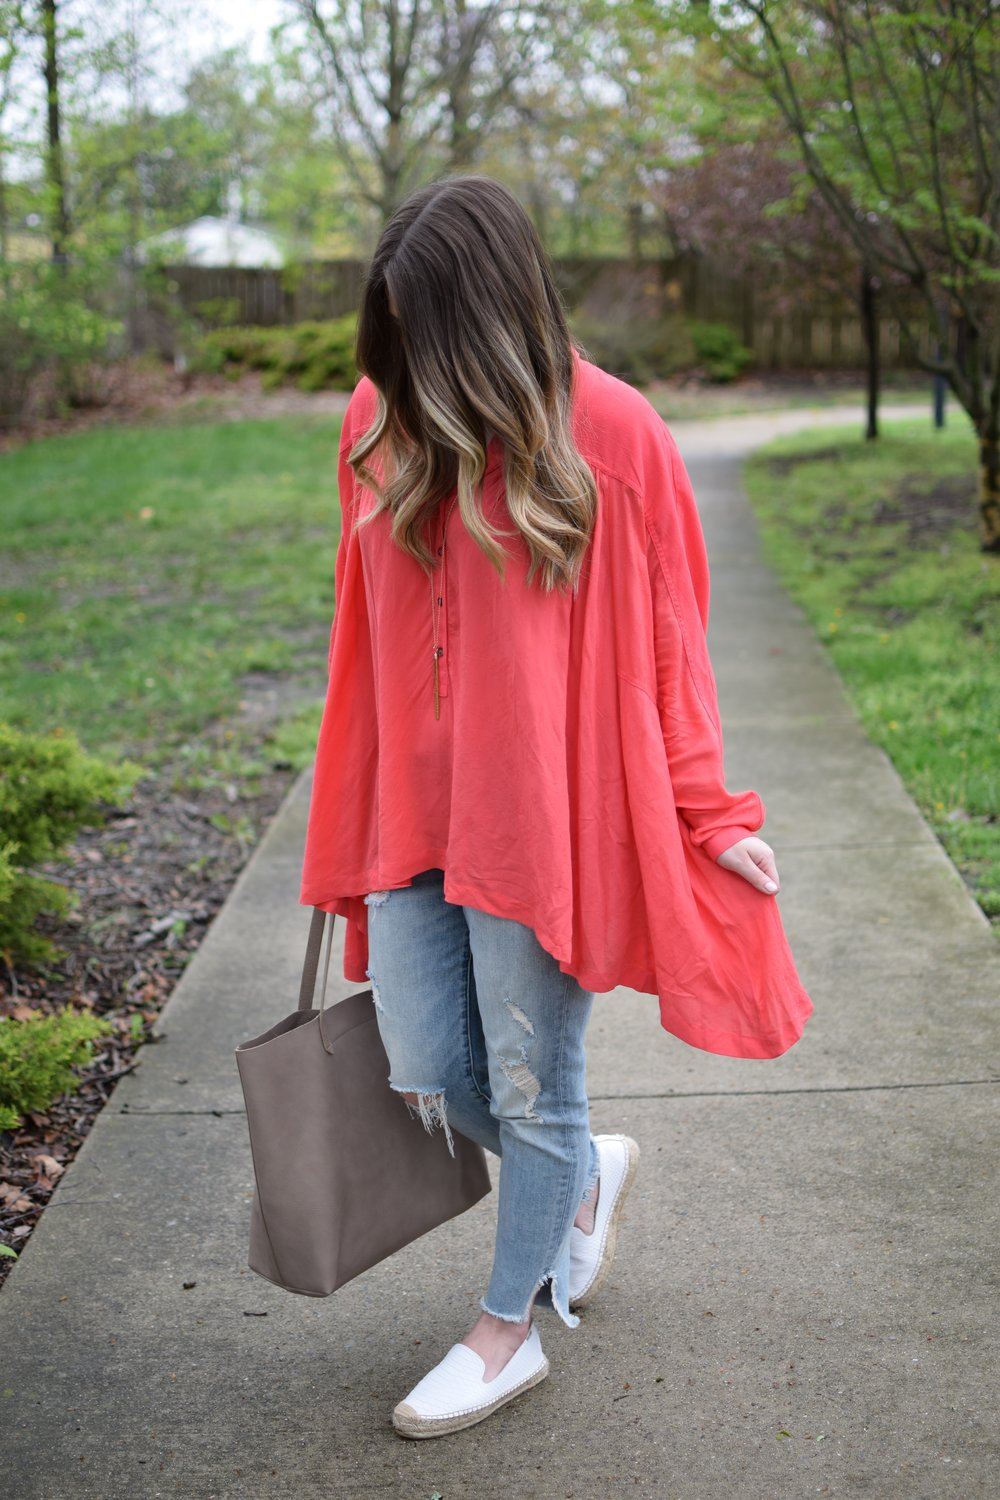 spring outfit idea / lightweight top & distressed denim